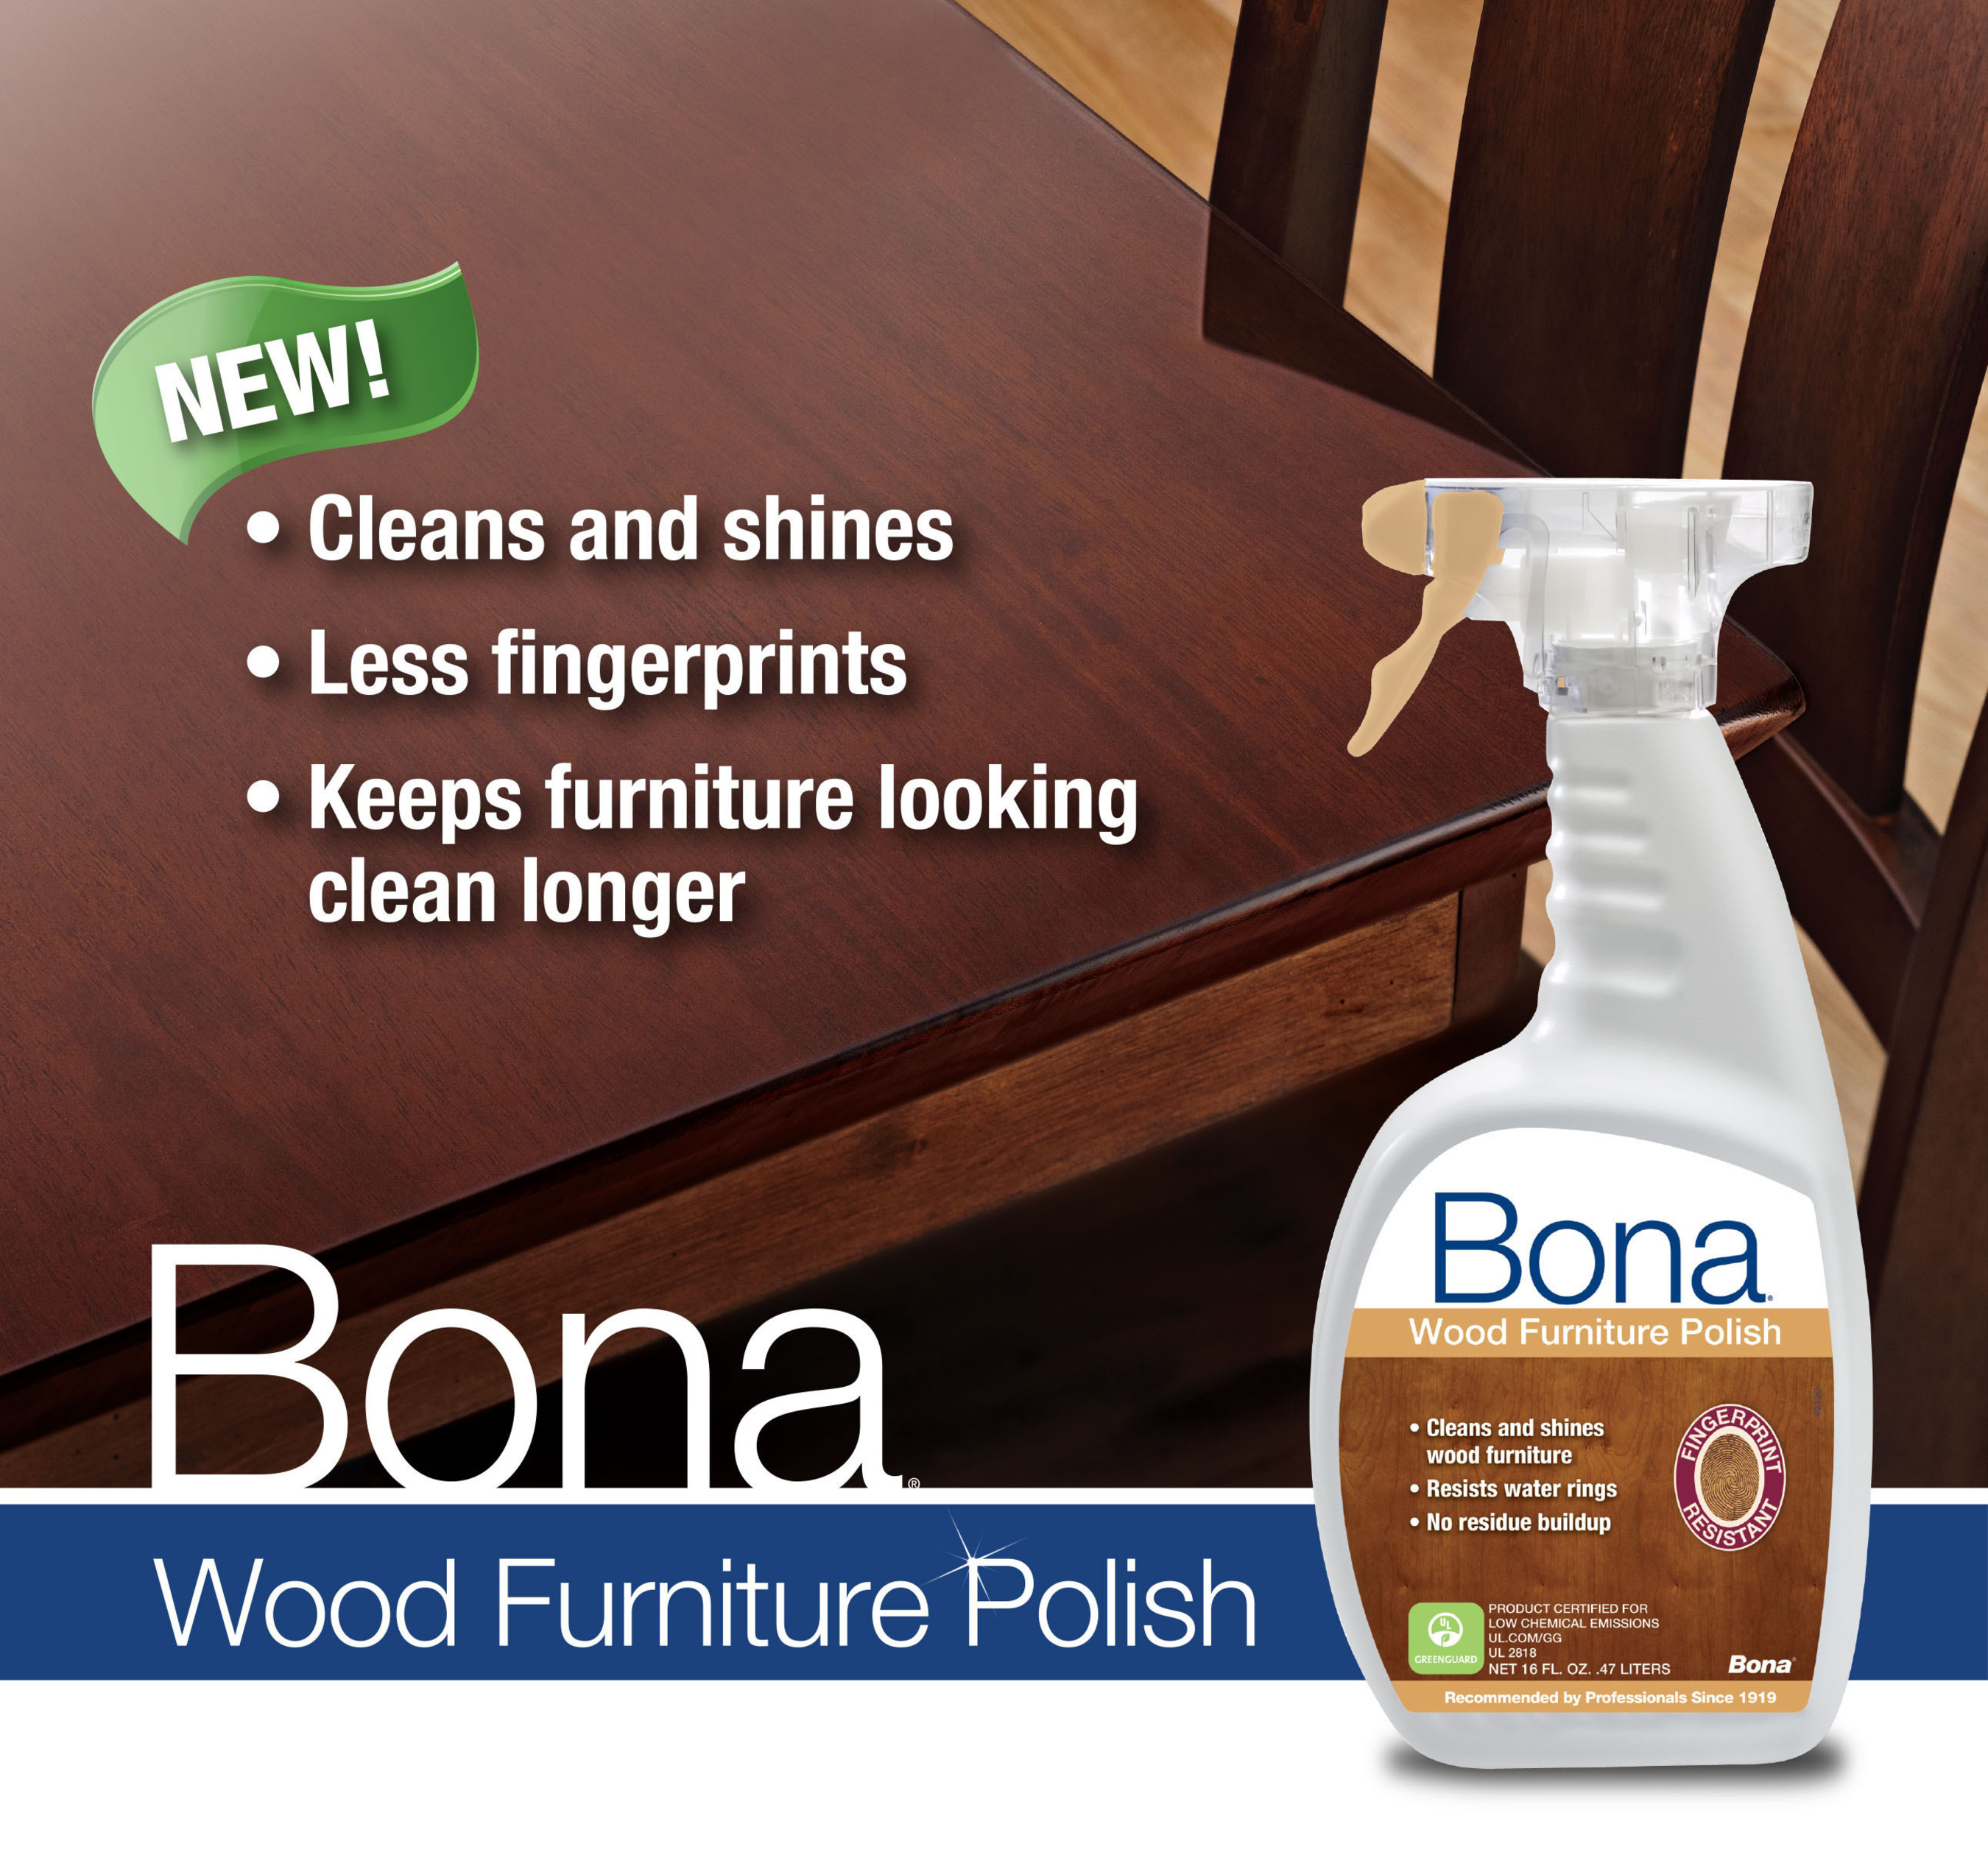 Bona(R) US Launches Bona Wood Furniture Polish; Experts in Wood for More Than 90 Years Develop Innovative Waterborne, Fingerprint Resistant Furniture Polish. (PRNewsFoto/Bona US) (PRNewsFoto/BONA US)